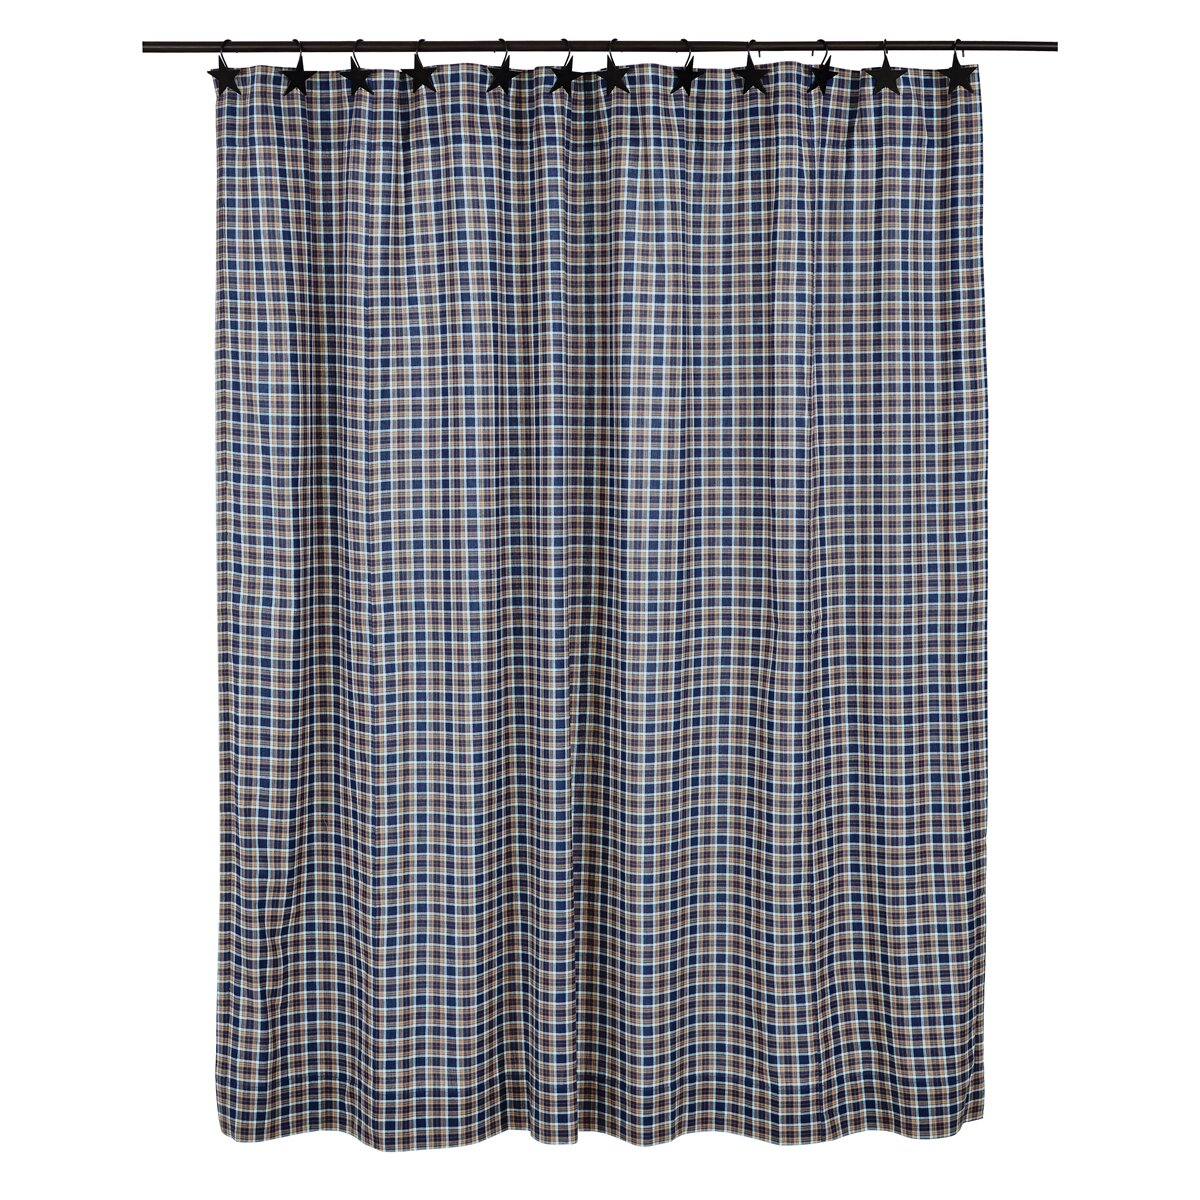 VHC Brands Jenson Cotton Shower Curtain